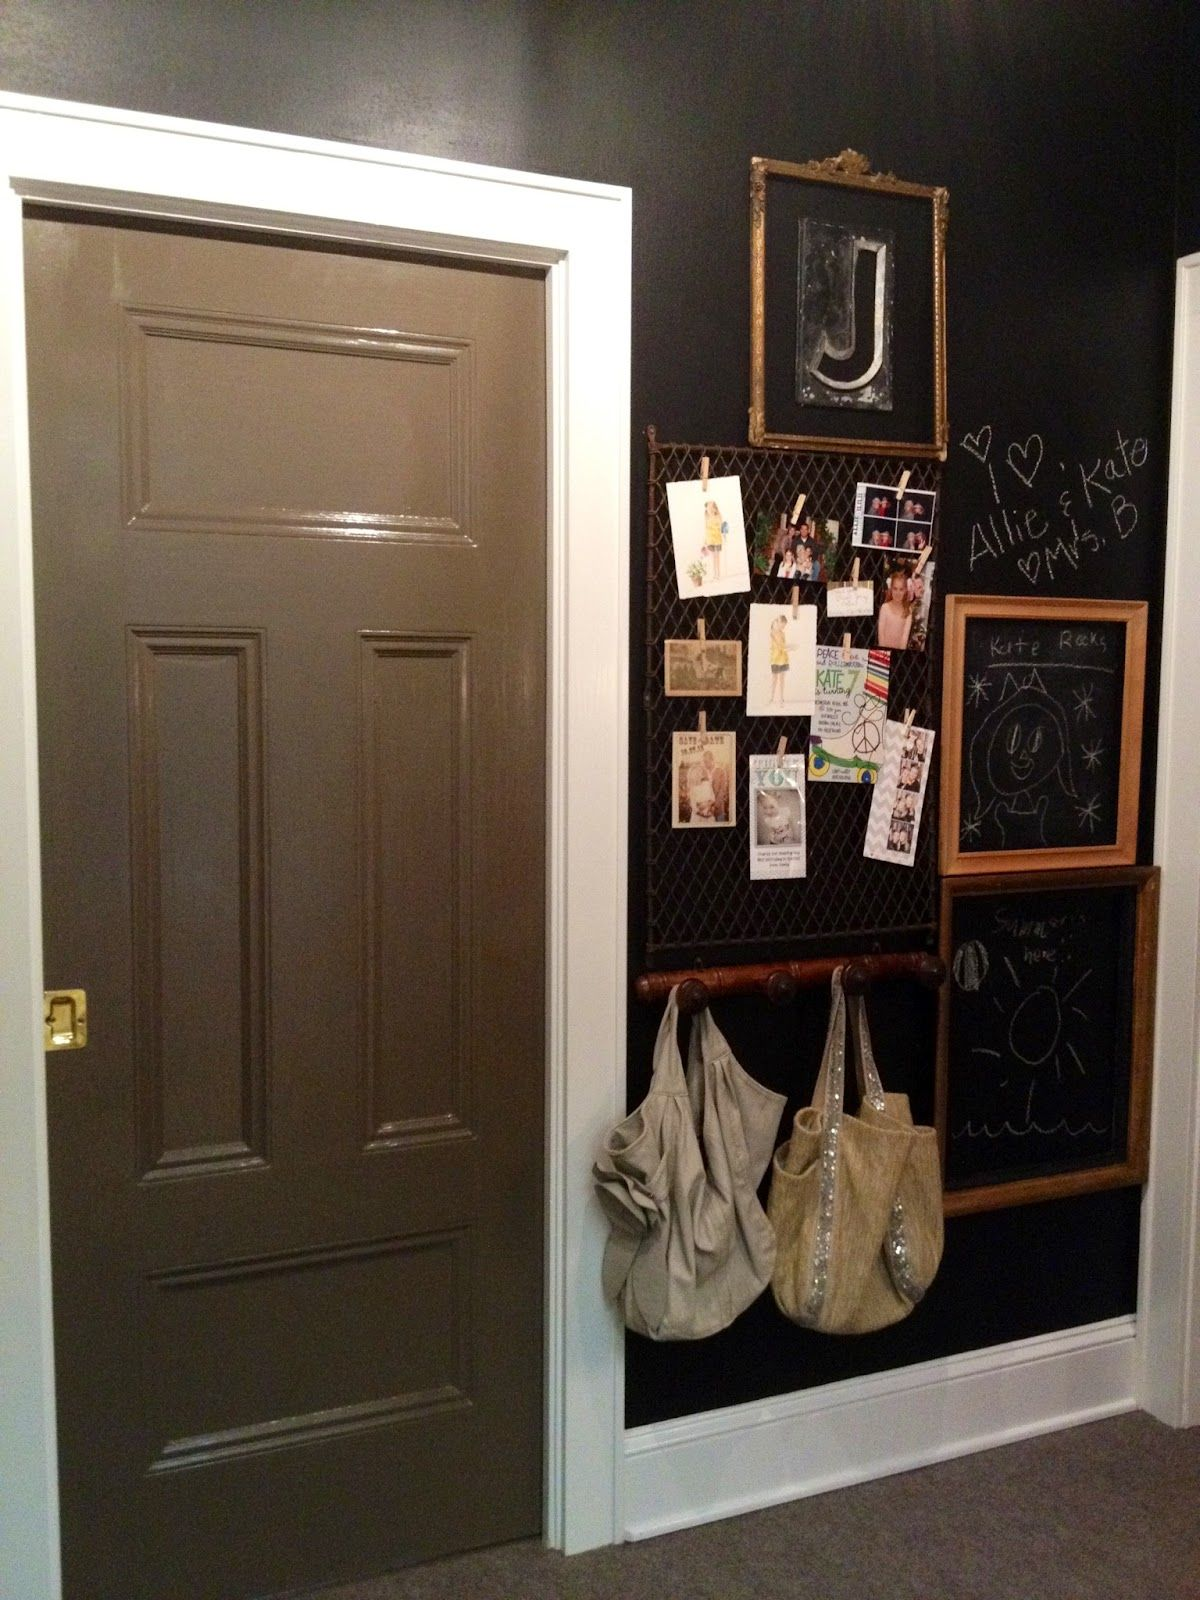 Chalkboard Wall With Frames Added, Wire Rack For Hanging Notes